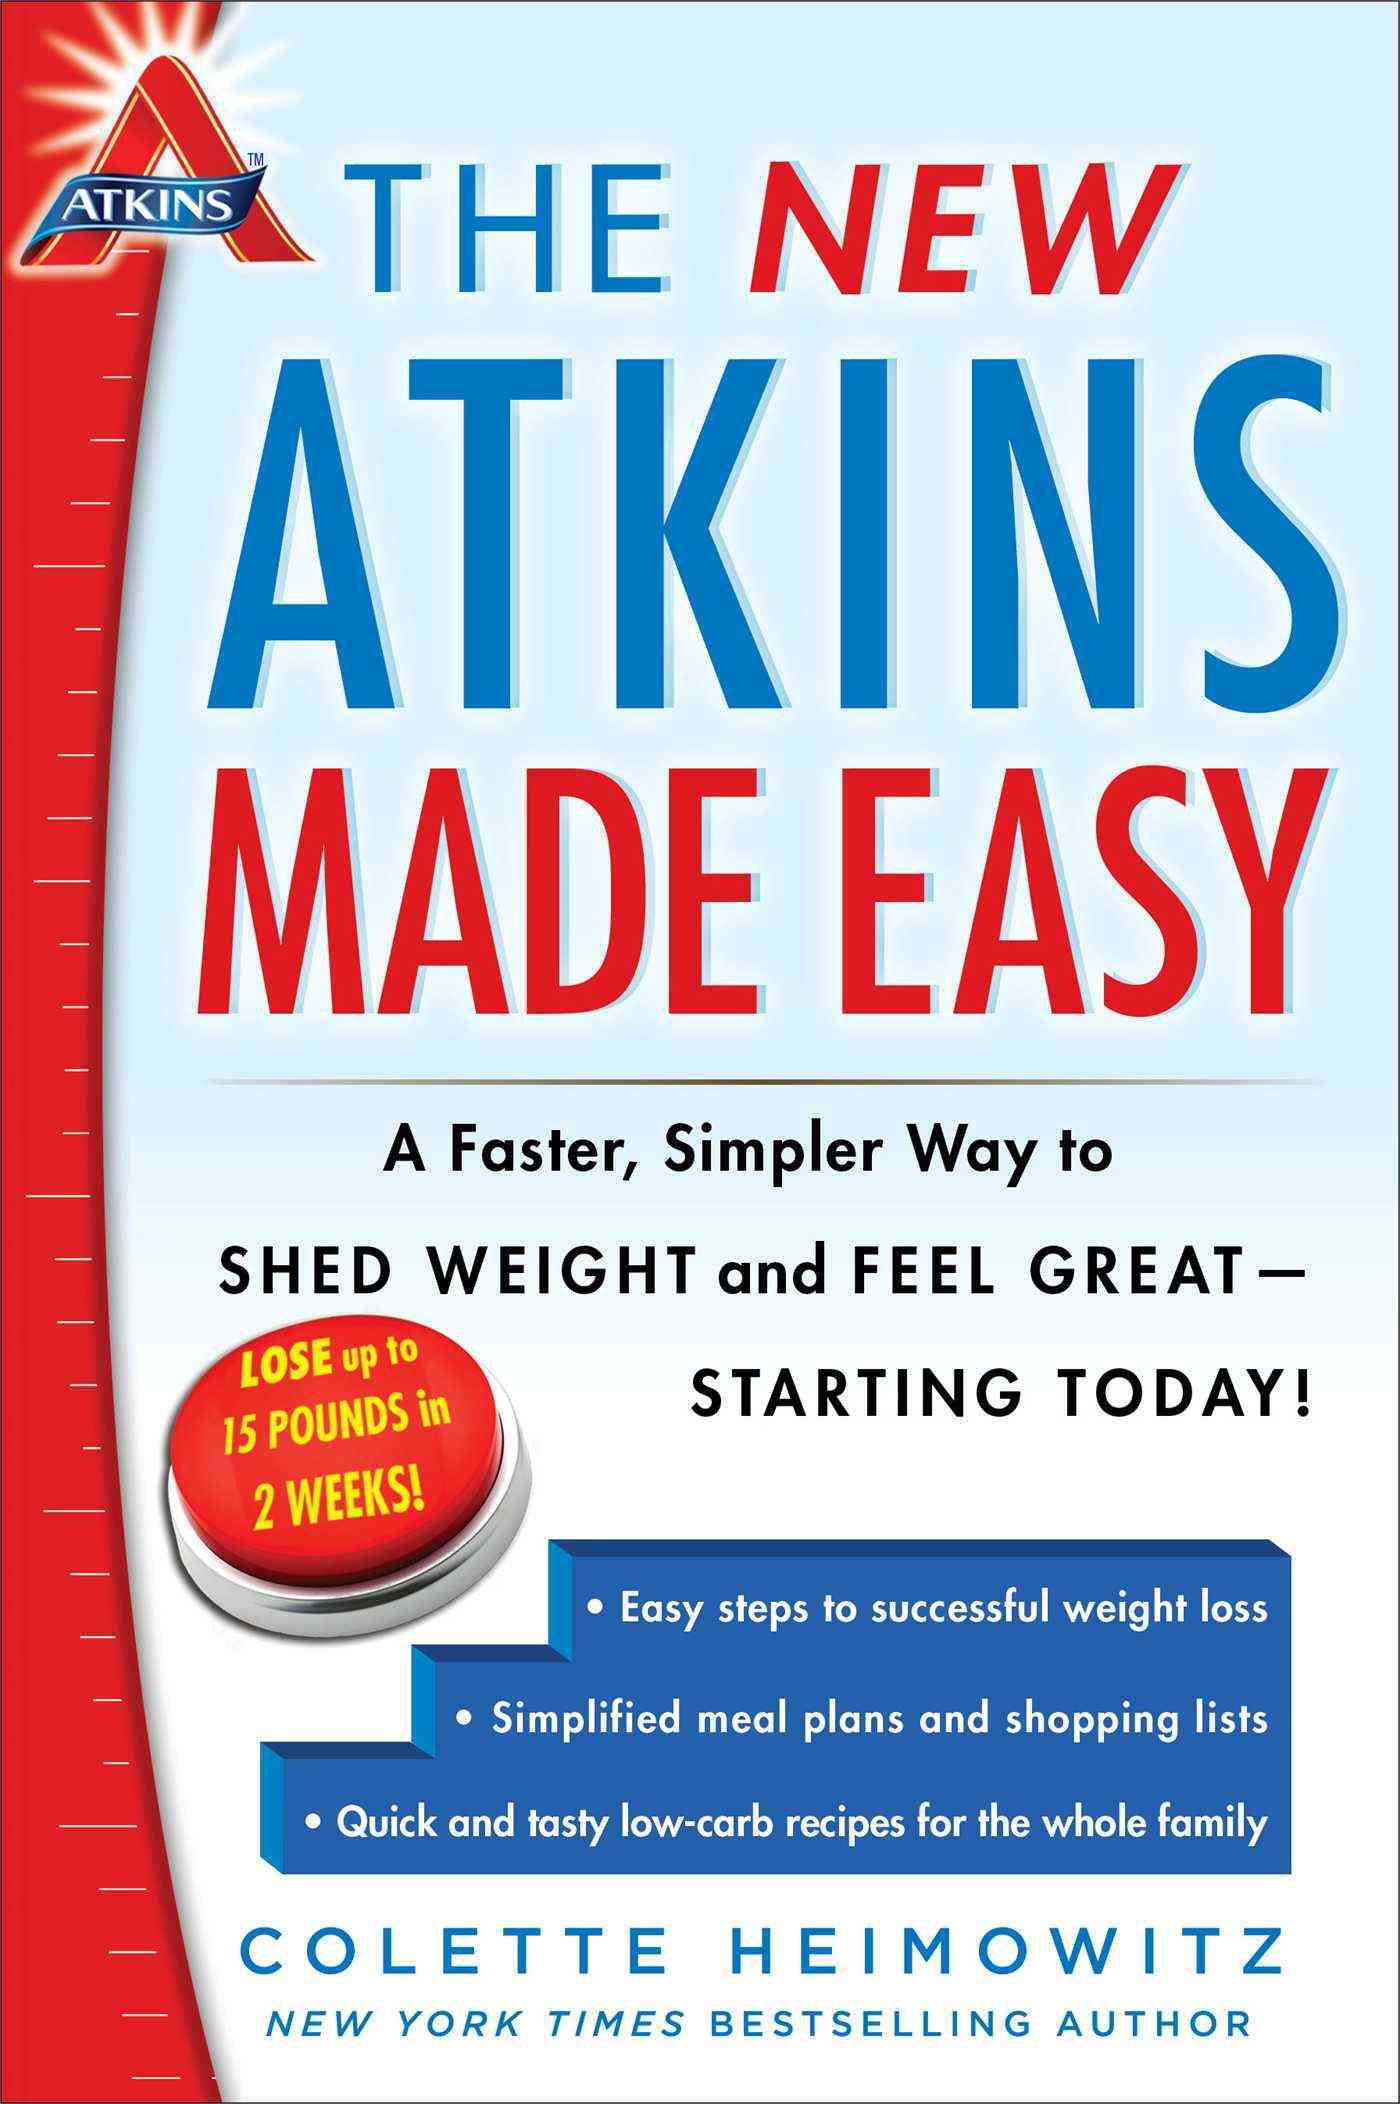 The New Atkins Made Easy: A Faster, Simpler Way to Shed Weight and Feel Great - Starting Today! (Paperback)